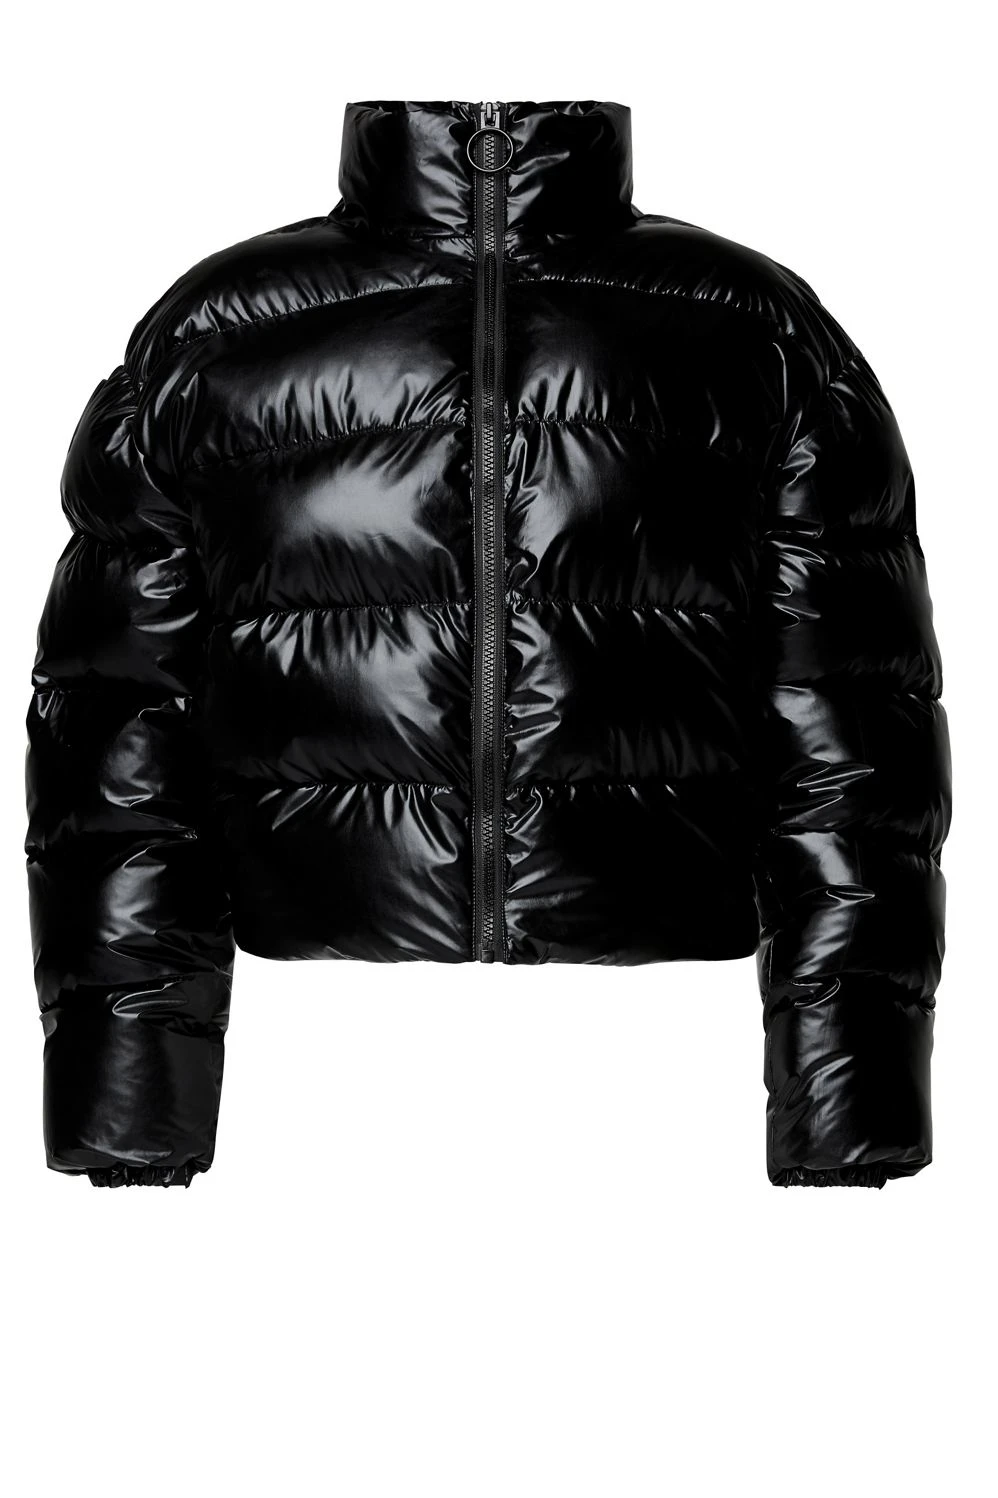 Wander Puffer Jacket Bubble Jacket Outfit Puffer Jacket Outfit Puffer Jacket Women [ 1498 x 998 Pixel ]